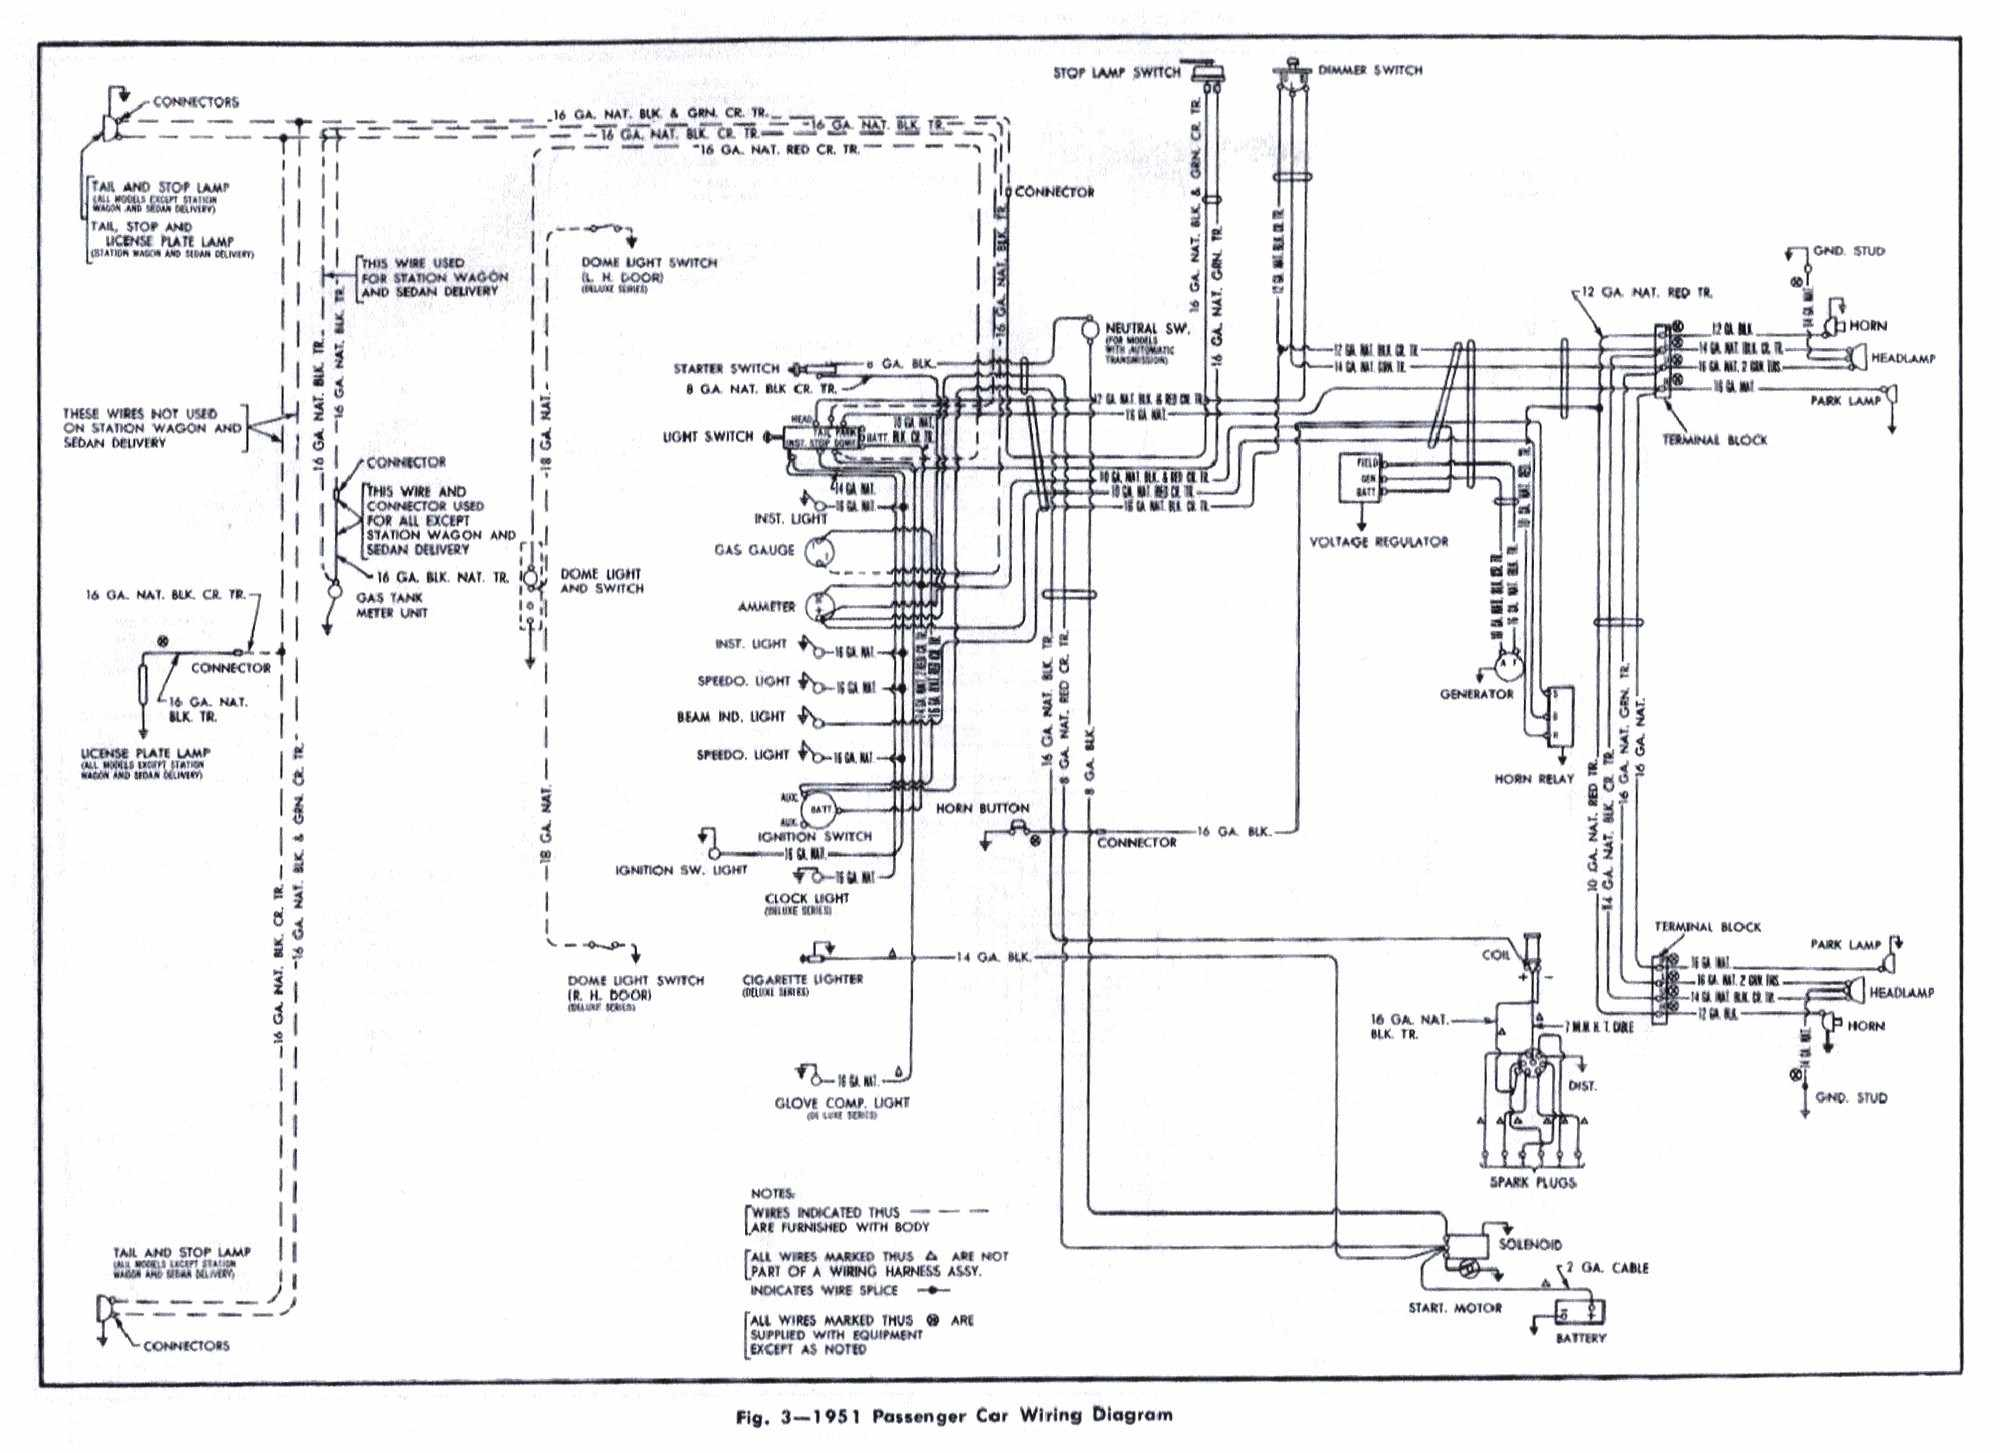 1975 Corvette Electrical Diagram Wiring Schematic 70 Camaro Z28 Car Diagrams App Auto Rh Stanford Edu Uk Co Gov Hardtobelieve Me